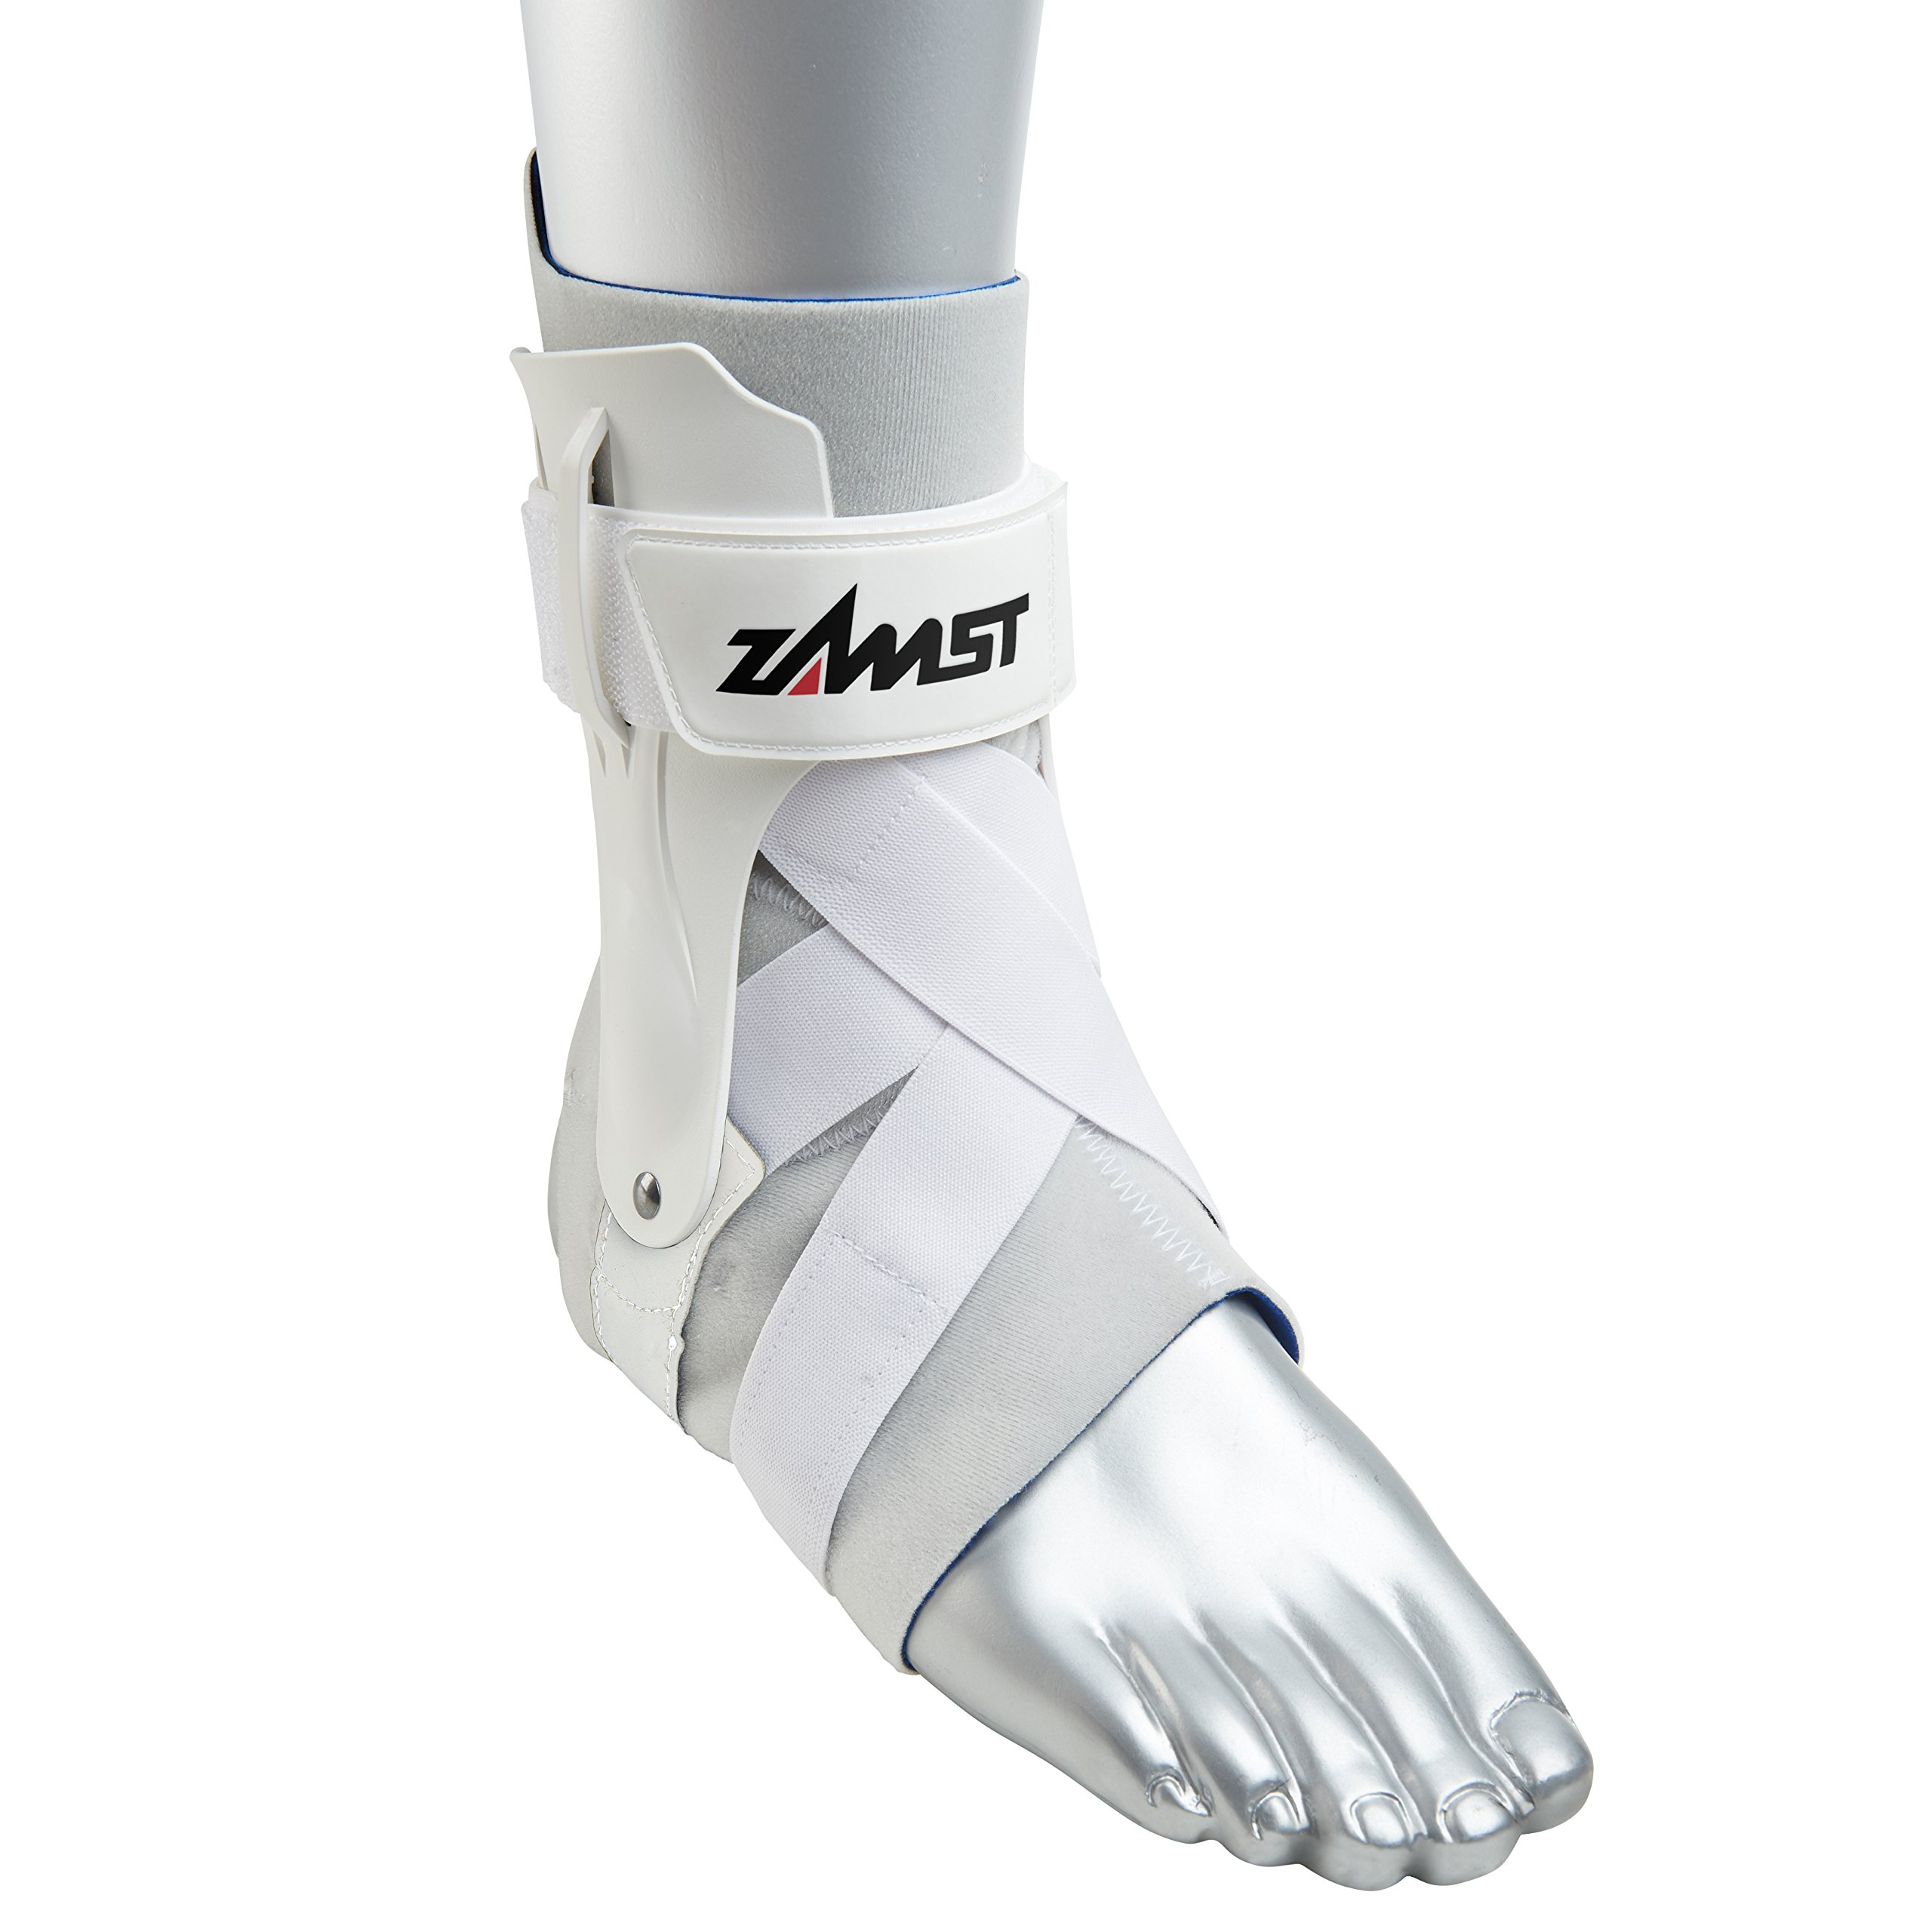 Zamst Ankle Brace Support Stabilizer: A2-DX Mens & Womens Sports Brace for Basketball, Soccer, Volleyball, Football & Baseball,White,Left,X-Large